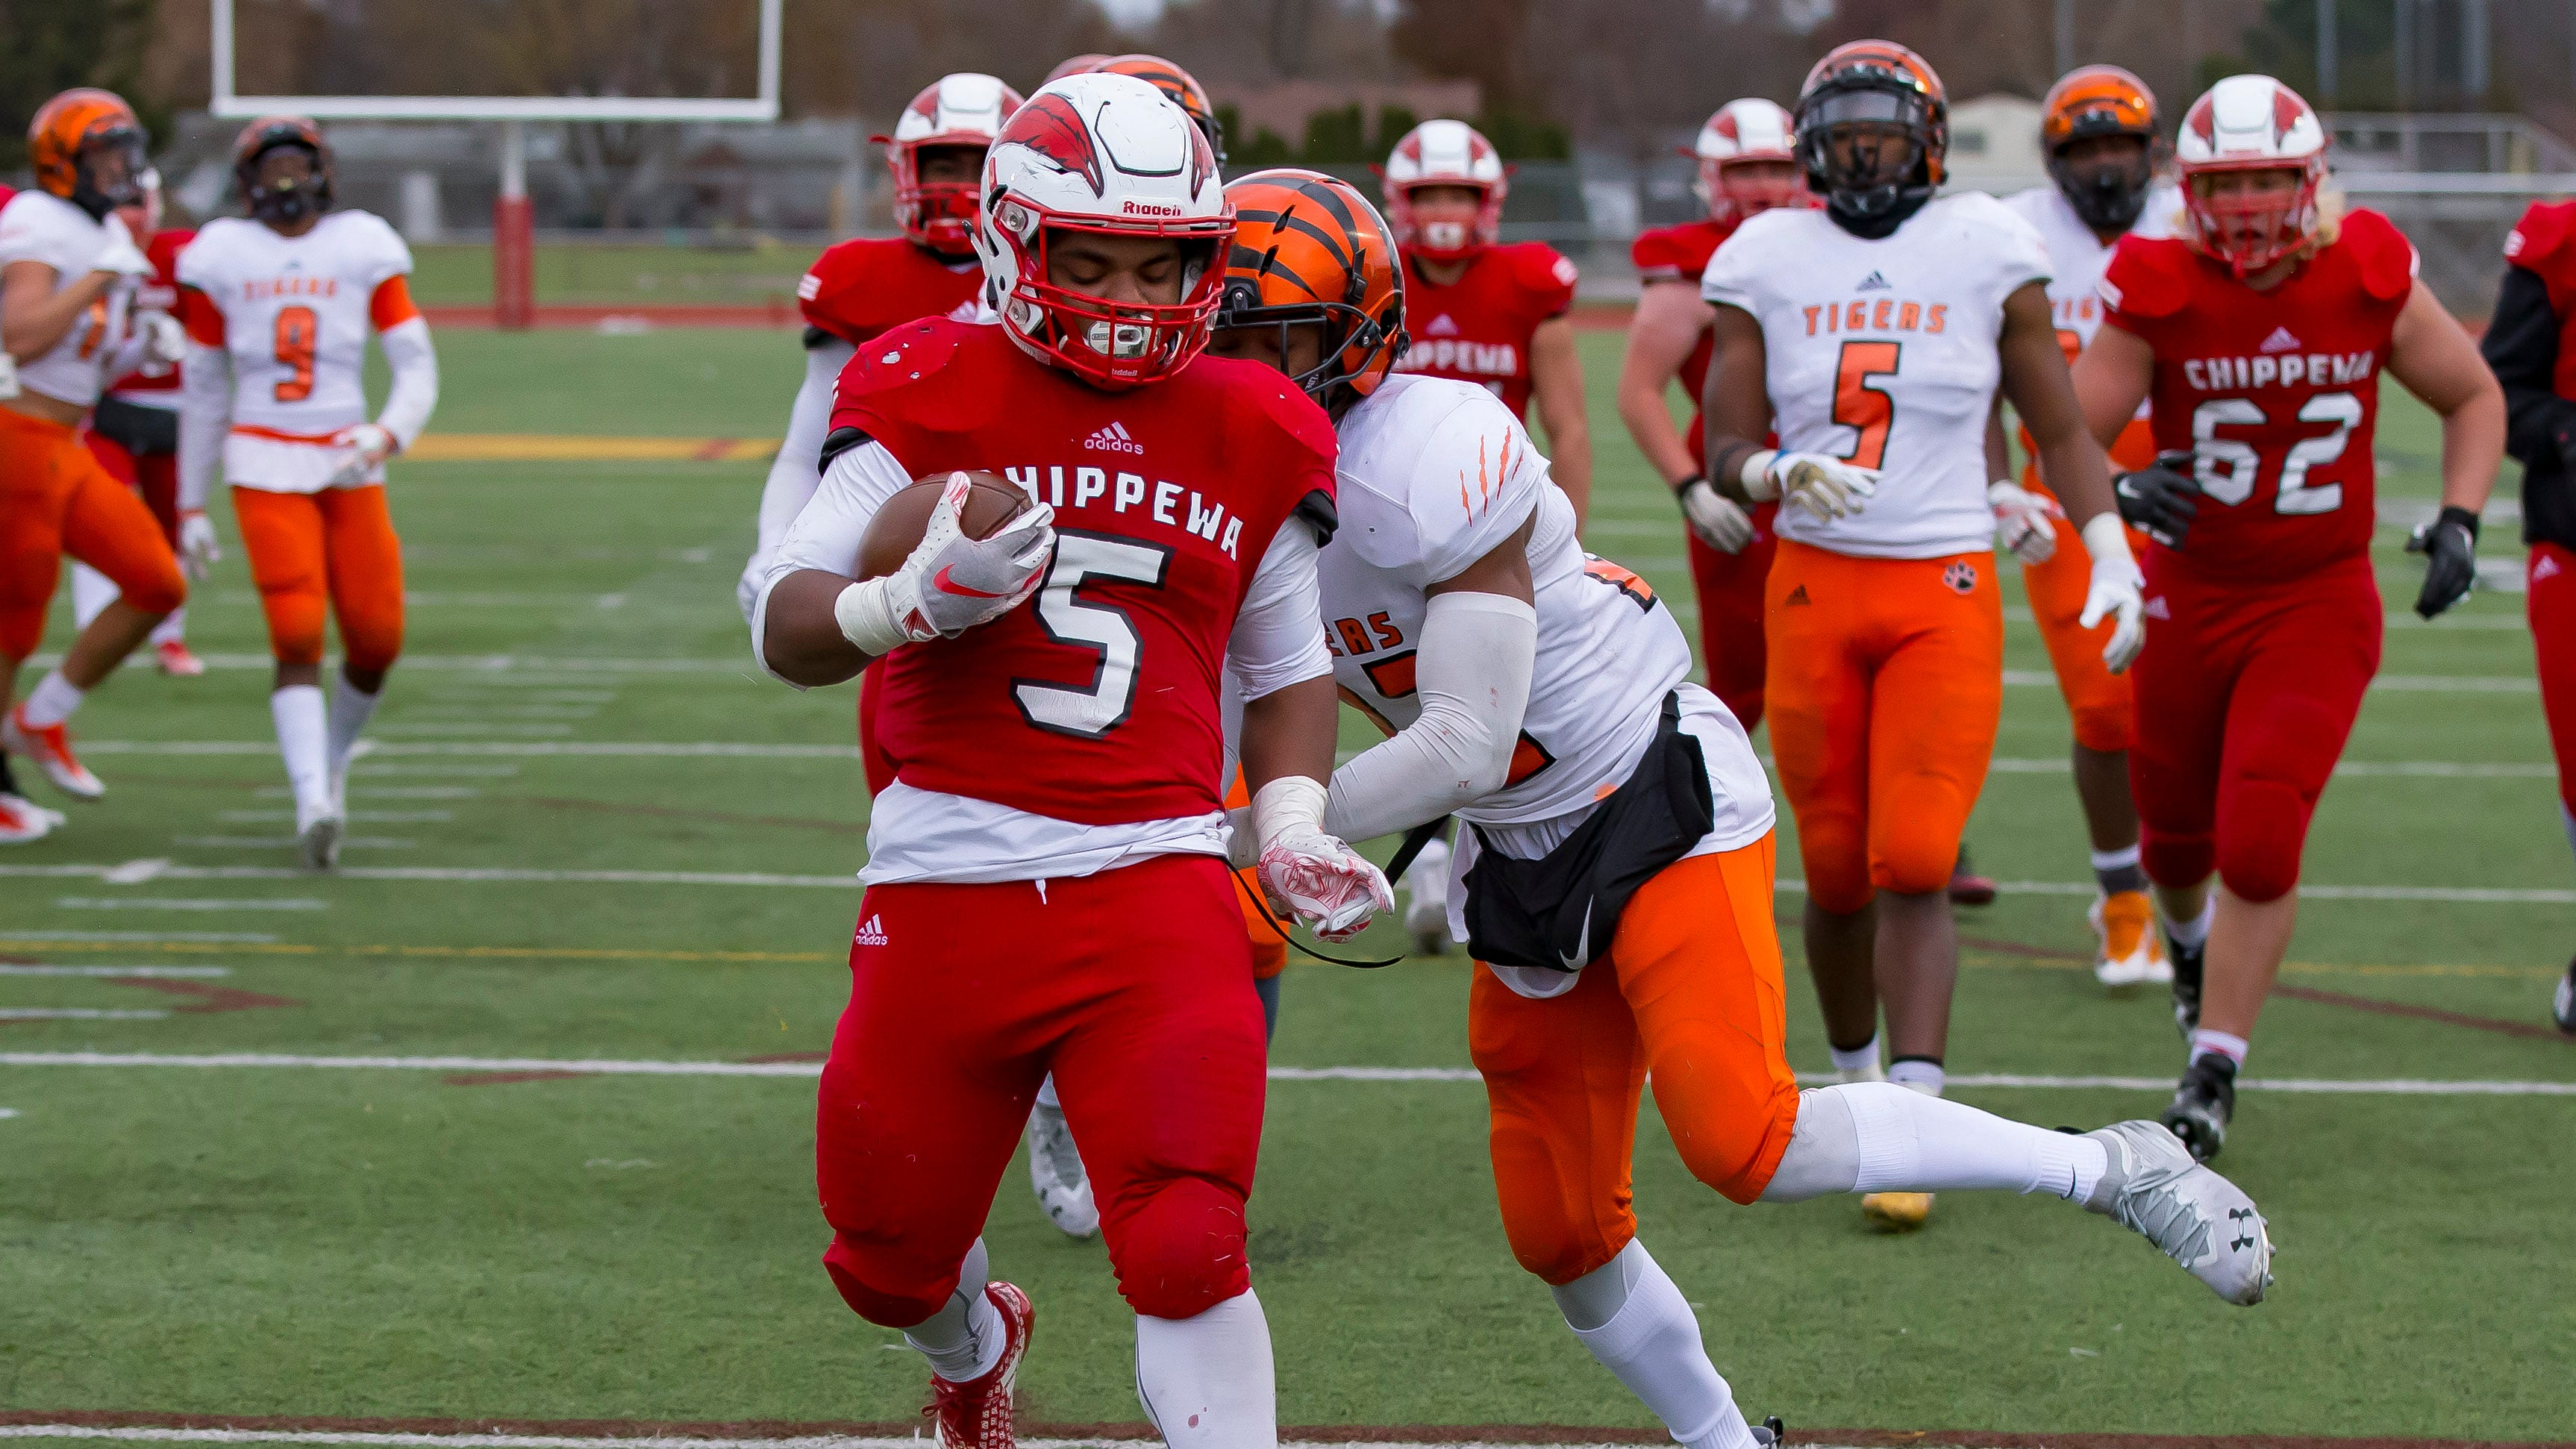 Andre Chenault (5) of the Chippewa Valley Big Reds scores a second half touchdown against the Belleville Tigers.